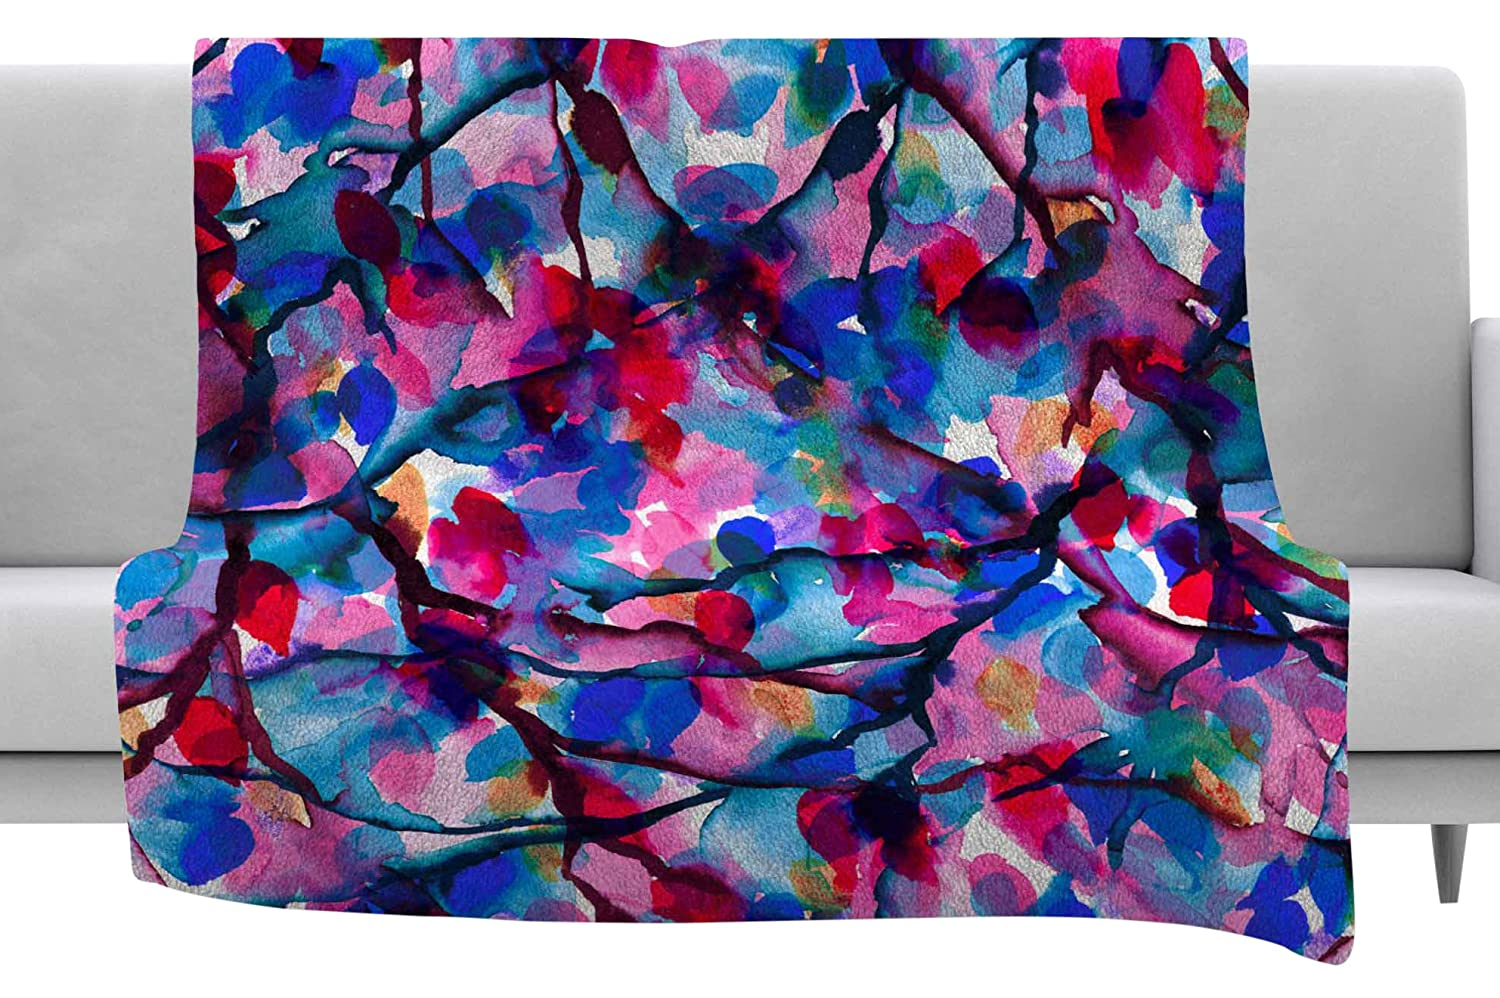 40 x 30 Fleece Blanket Kess InHouse EBI Emporium by Any Other Name 2 Blue Red Watercolor Throw